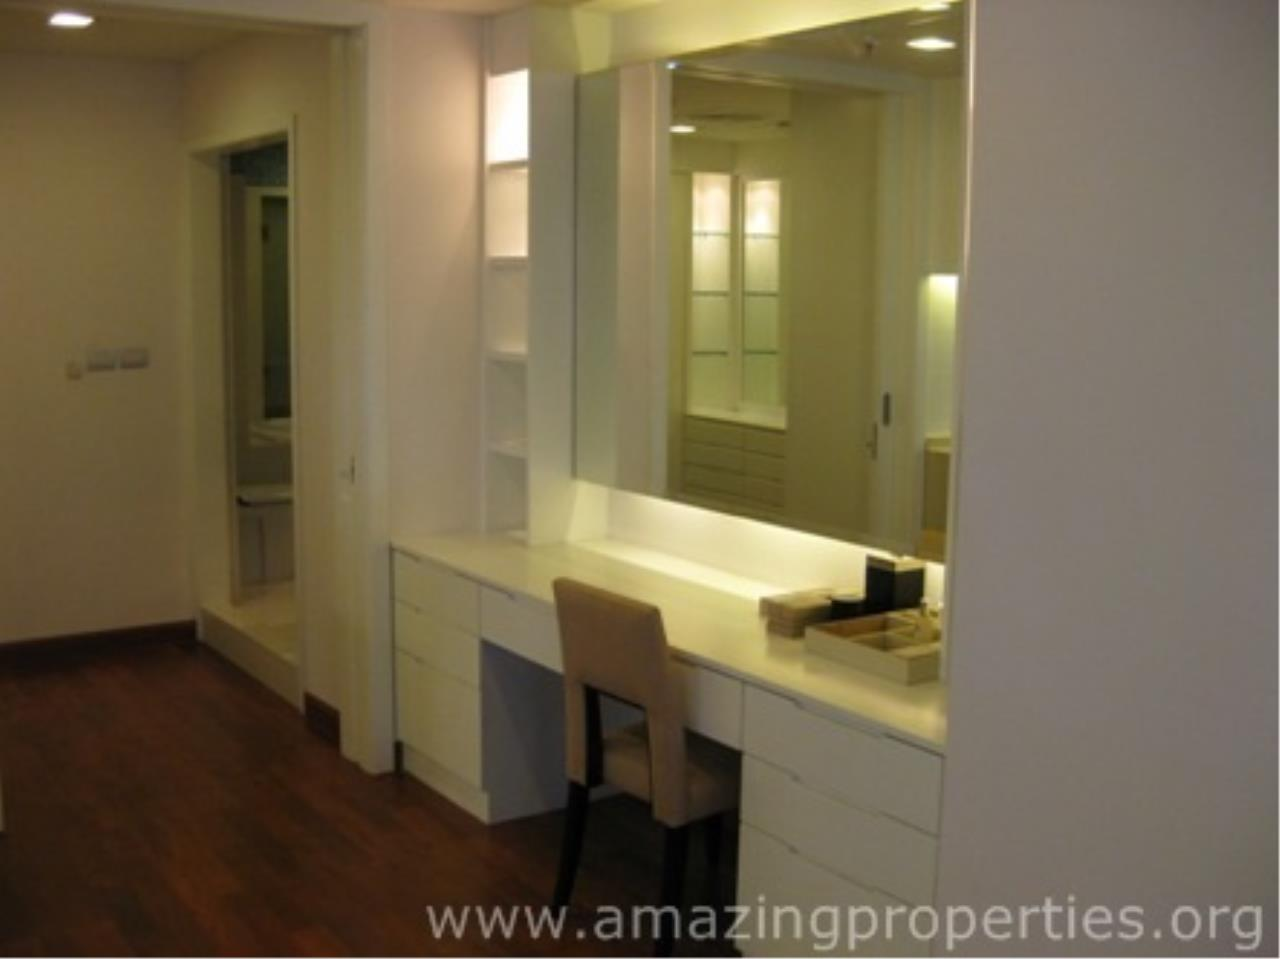 Amazing Properties Agency's 3 bedrooms Apartment for rent/sale 7